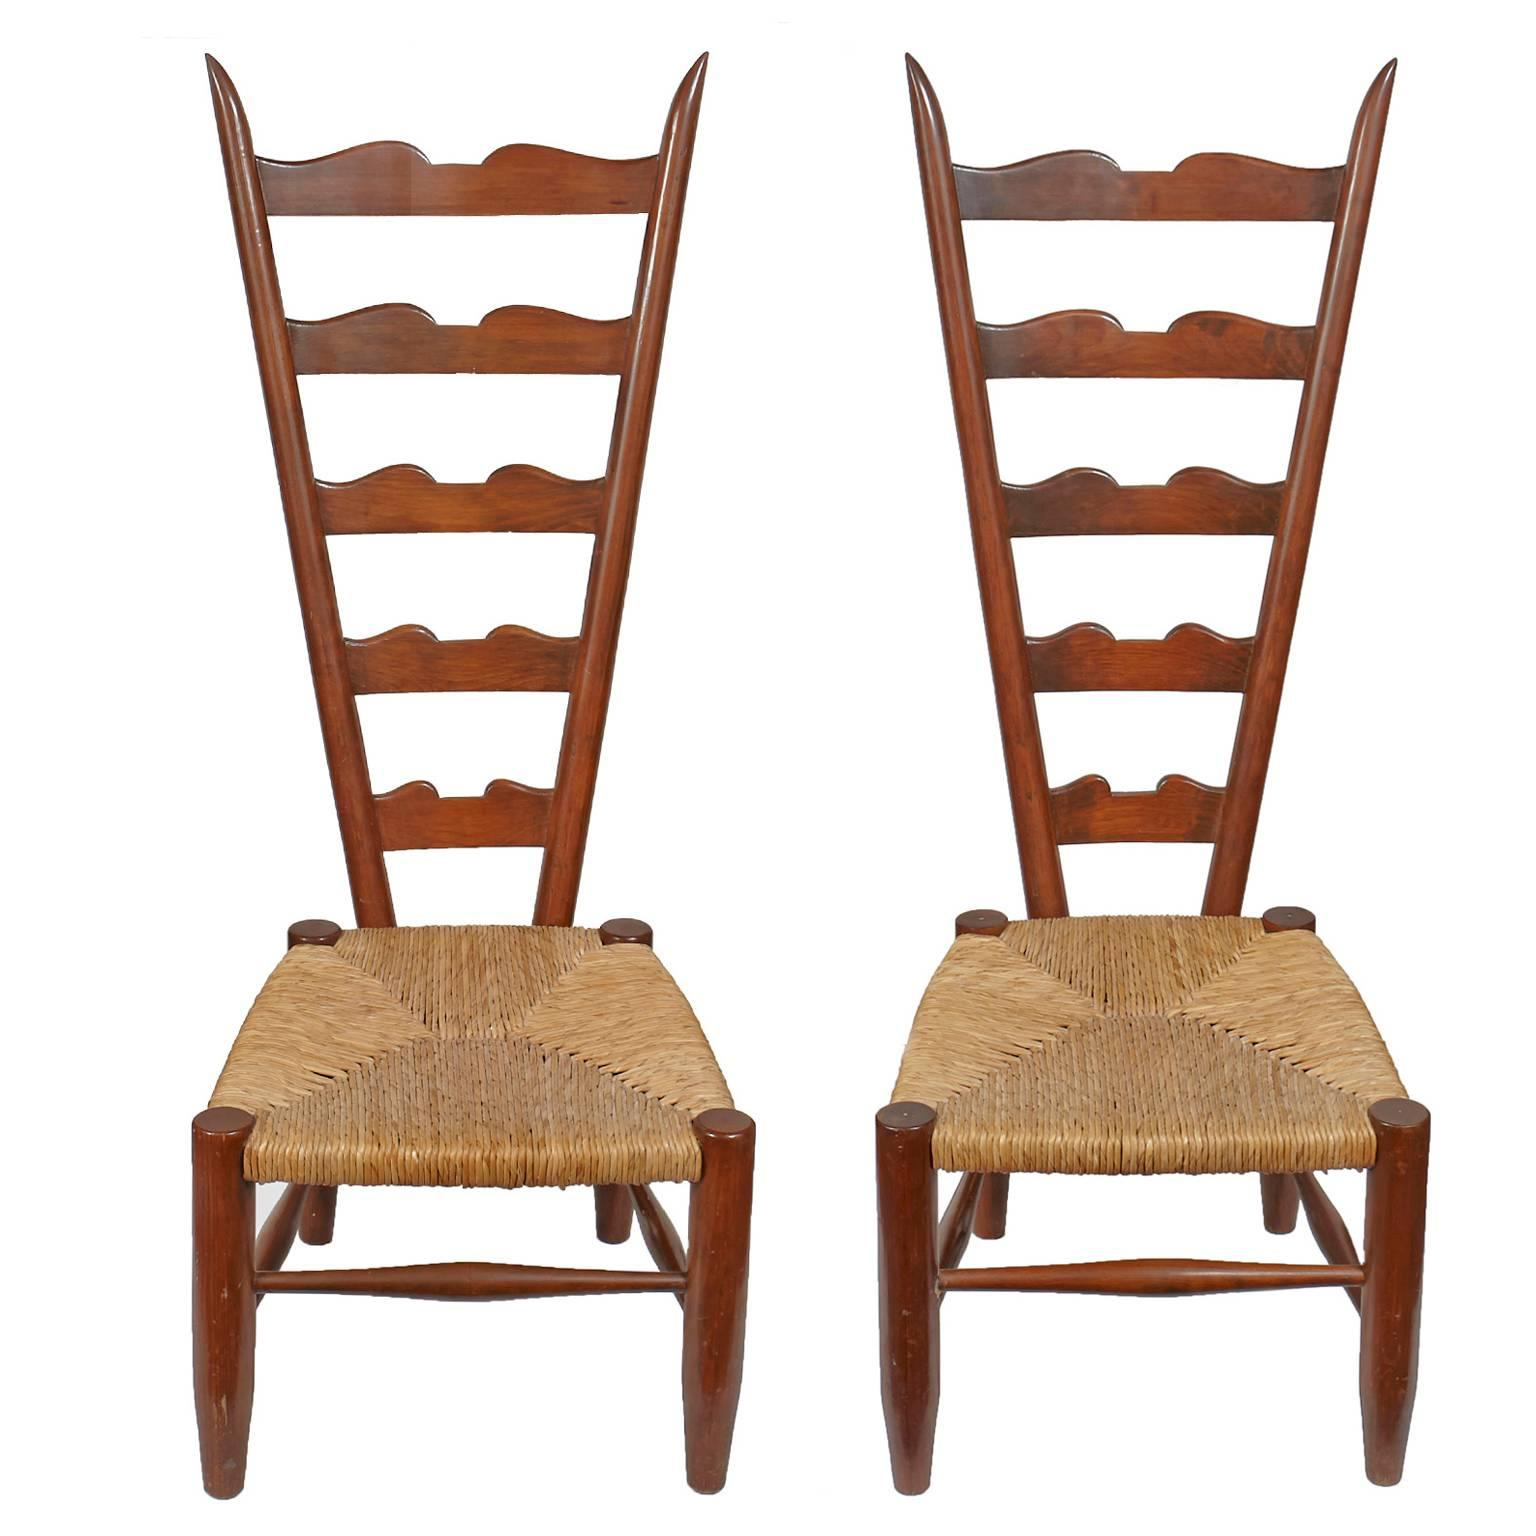 Pair Of Vintage Ladder Back Chairs With Low Rush Seat For Sale